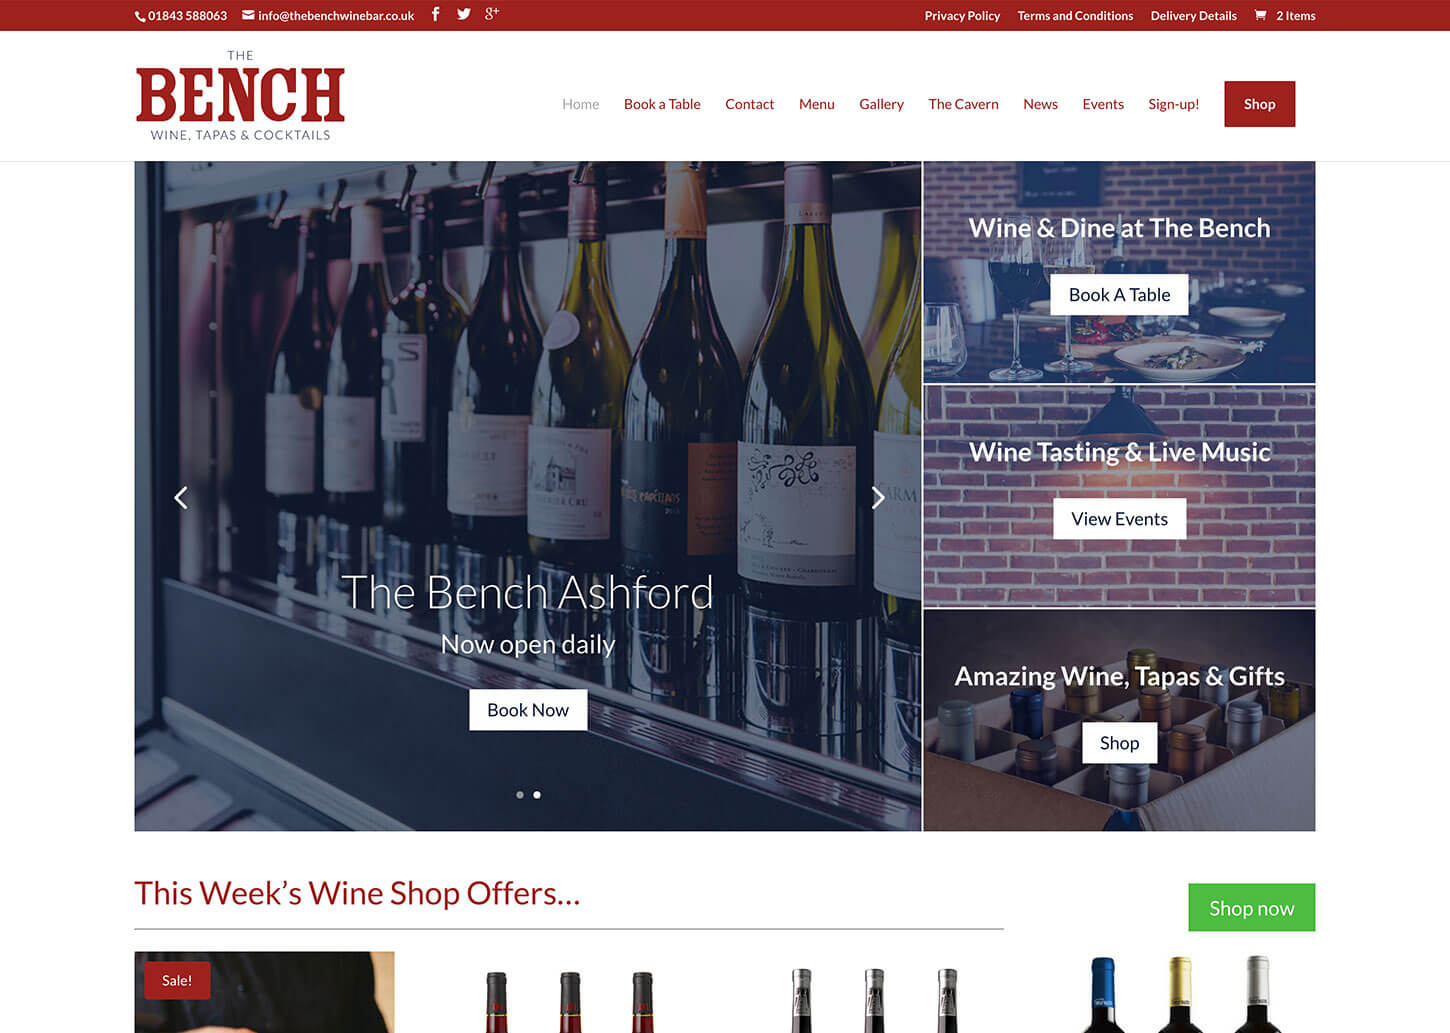 Web Design Project: The Bench Restaurant